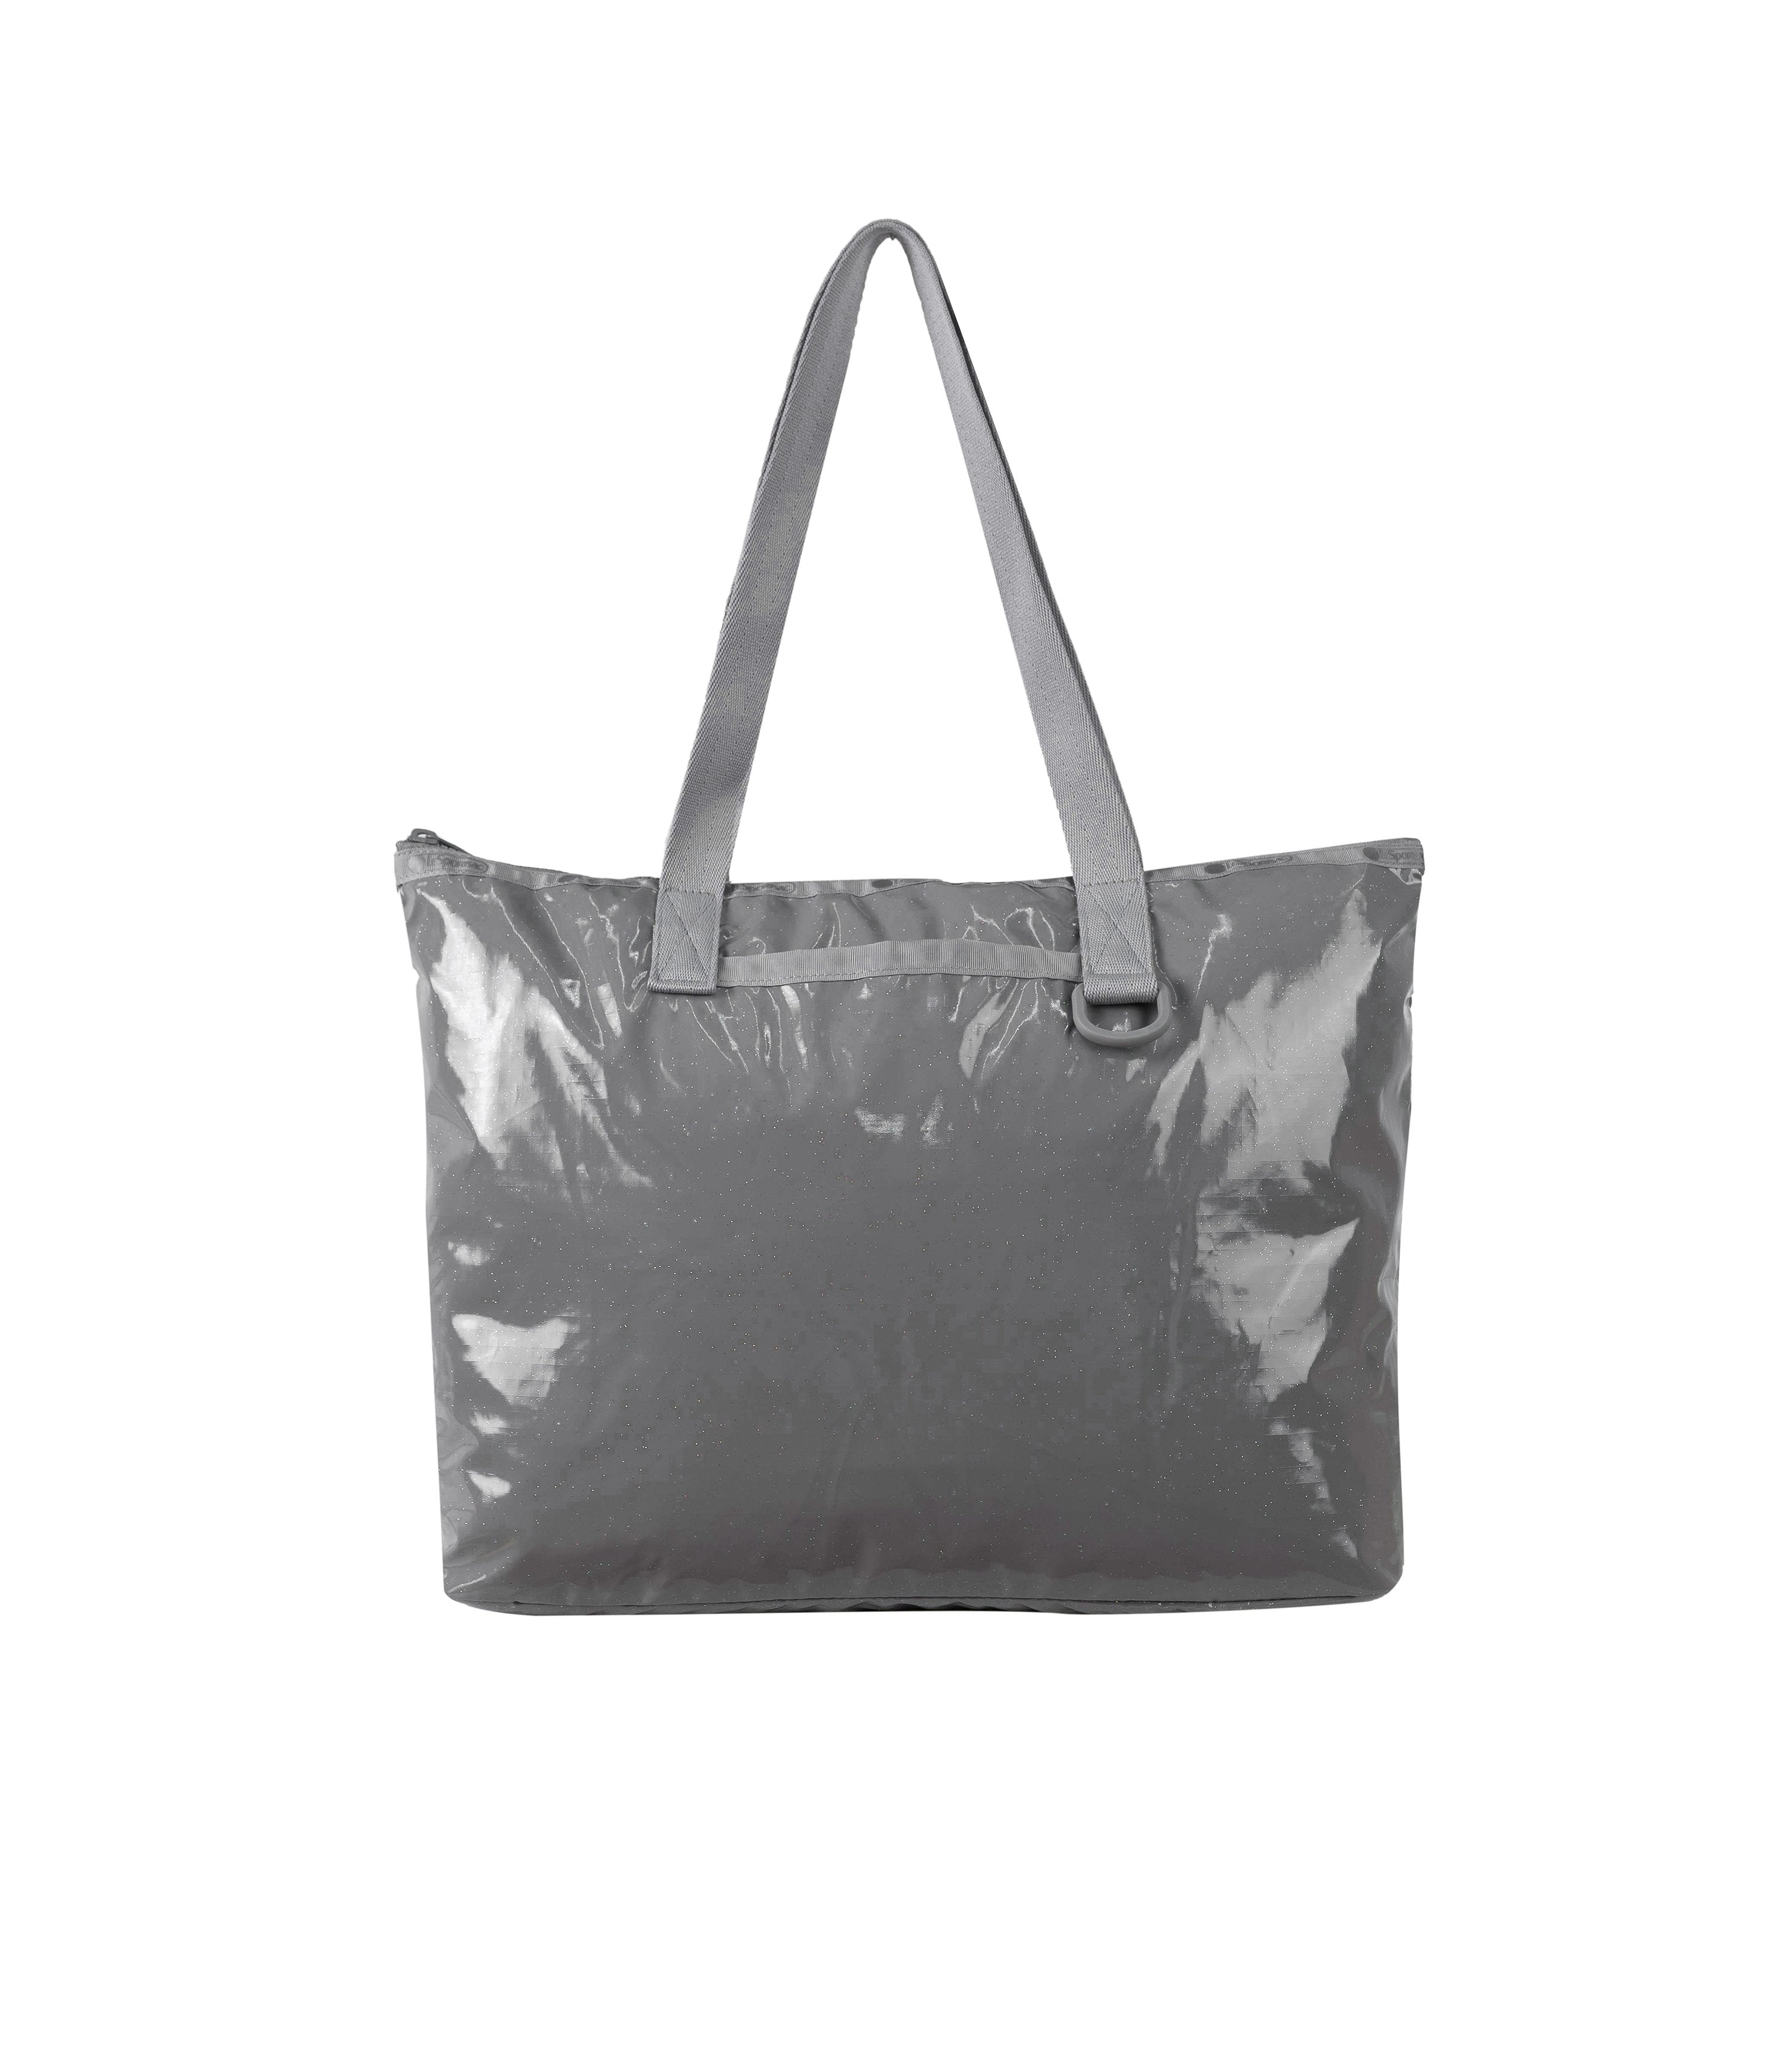 LeSportsac - Totes - Daily East West Tote - Glitter Wish Patent